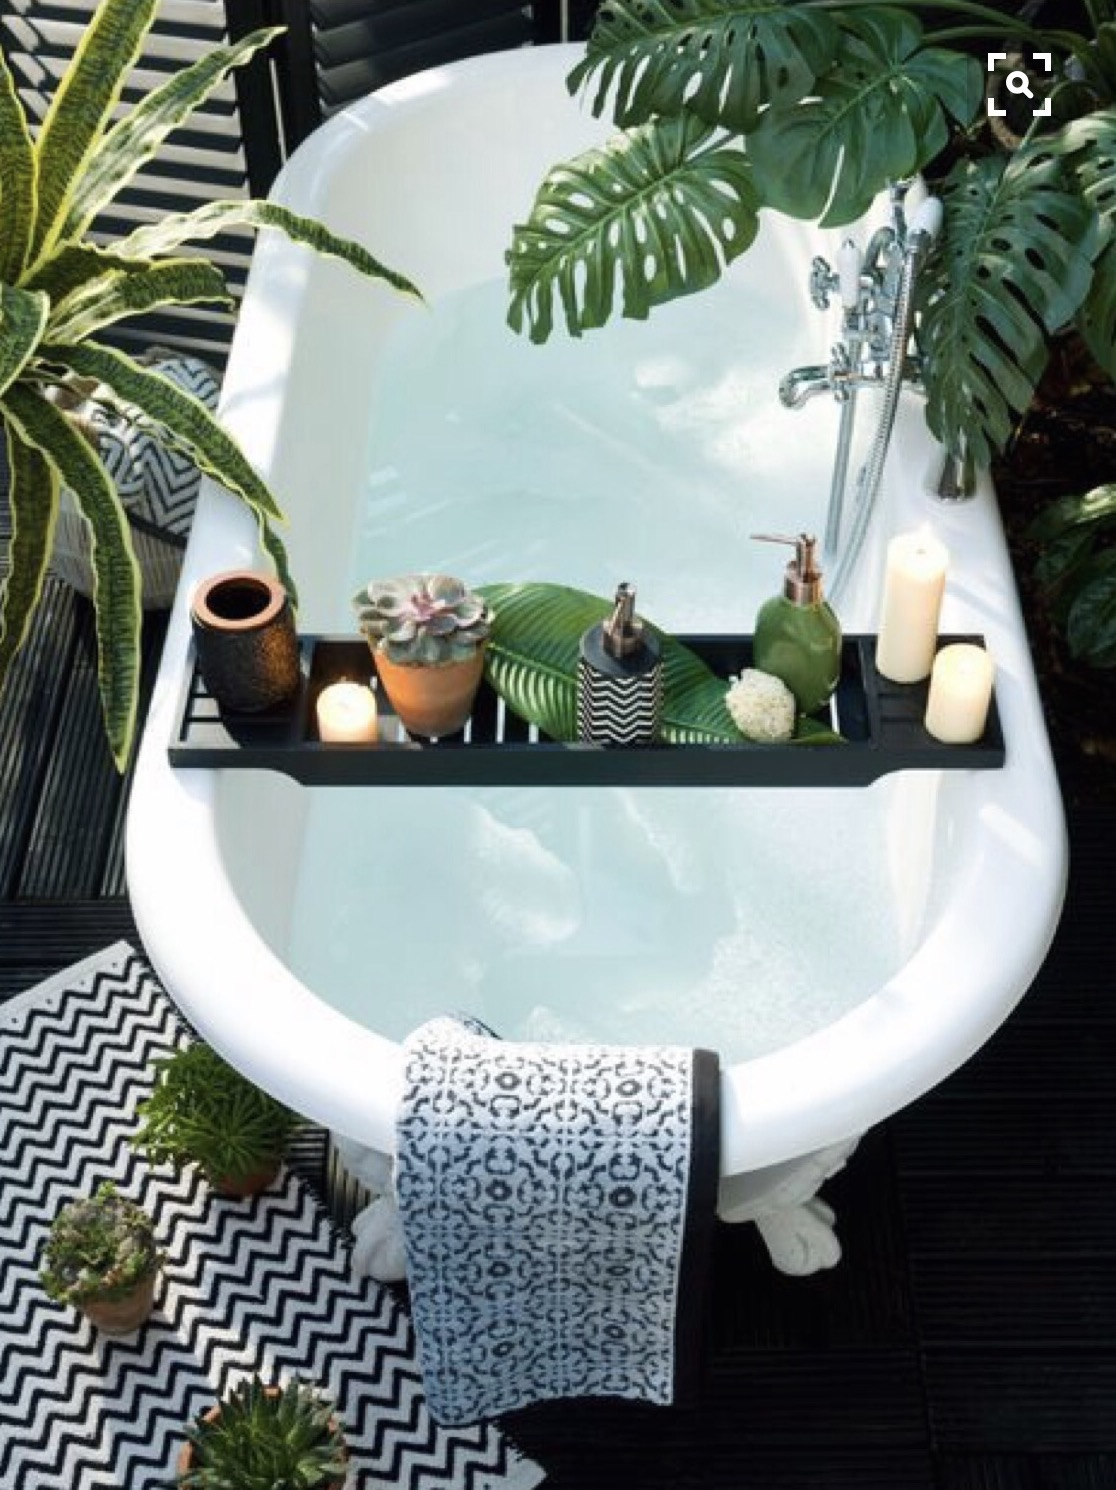 Goddess bathes are a fabulous way to let your mind and body unwind.